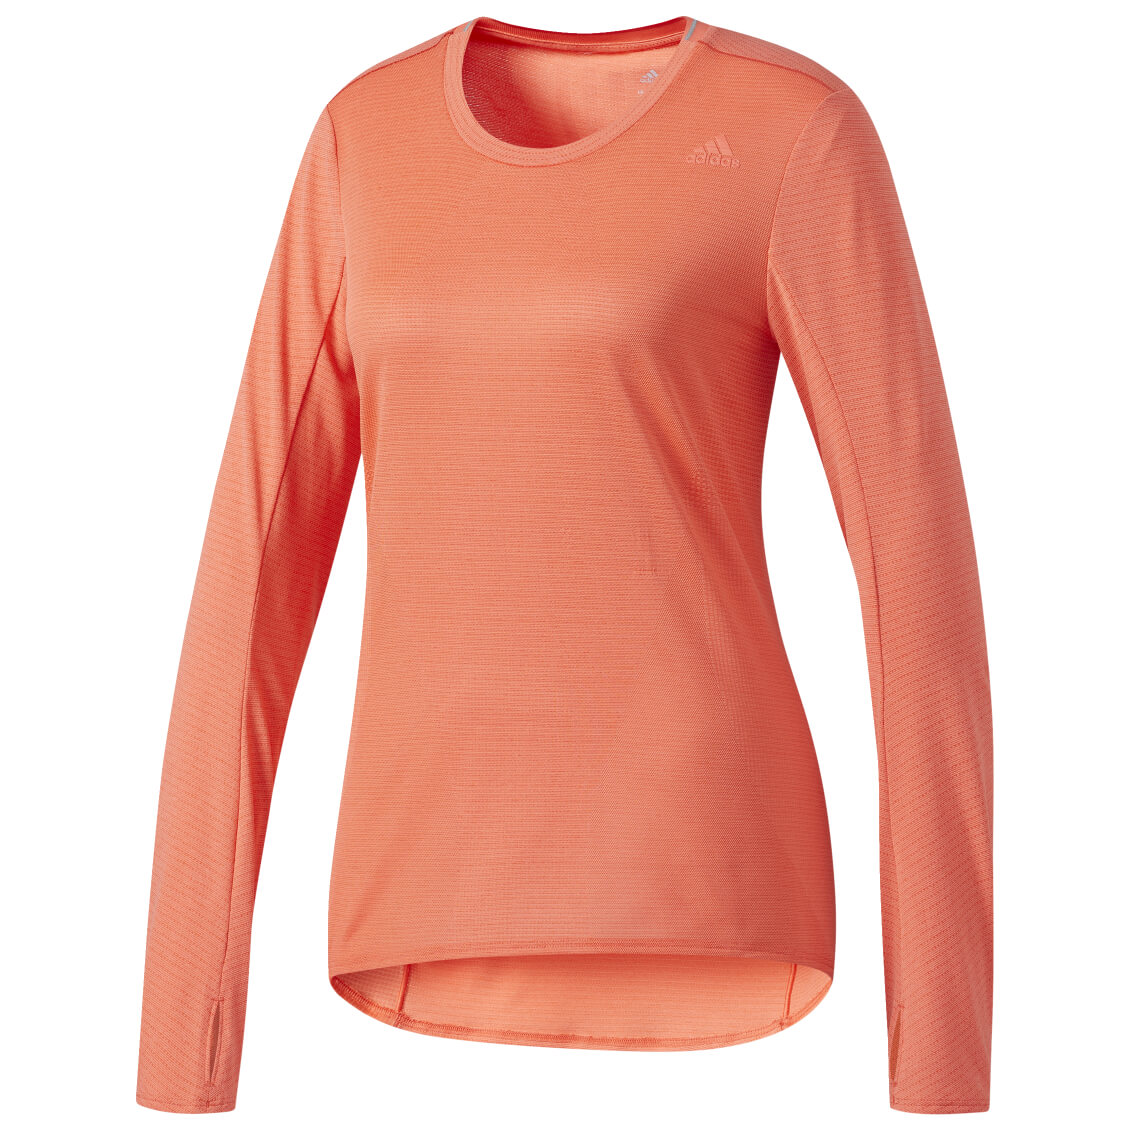 a29e7d54 Adidas Supernova Long Sleeve Tee - Running Shirt Women's | Buy online |  Alpinetrek.co.uk